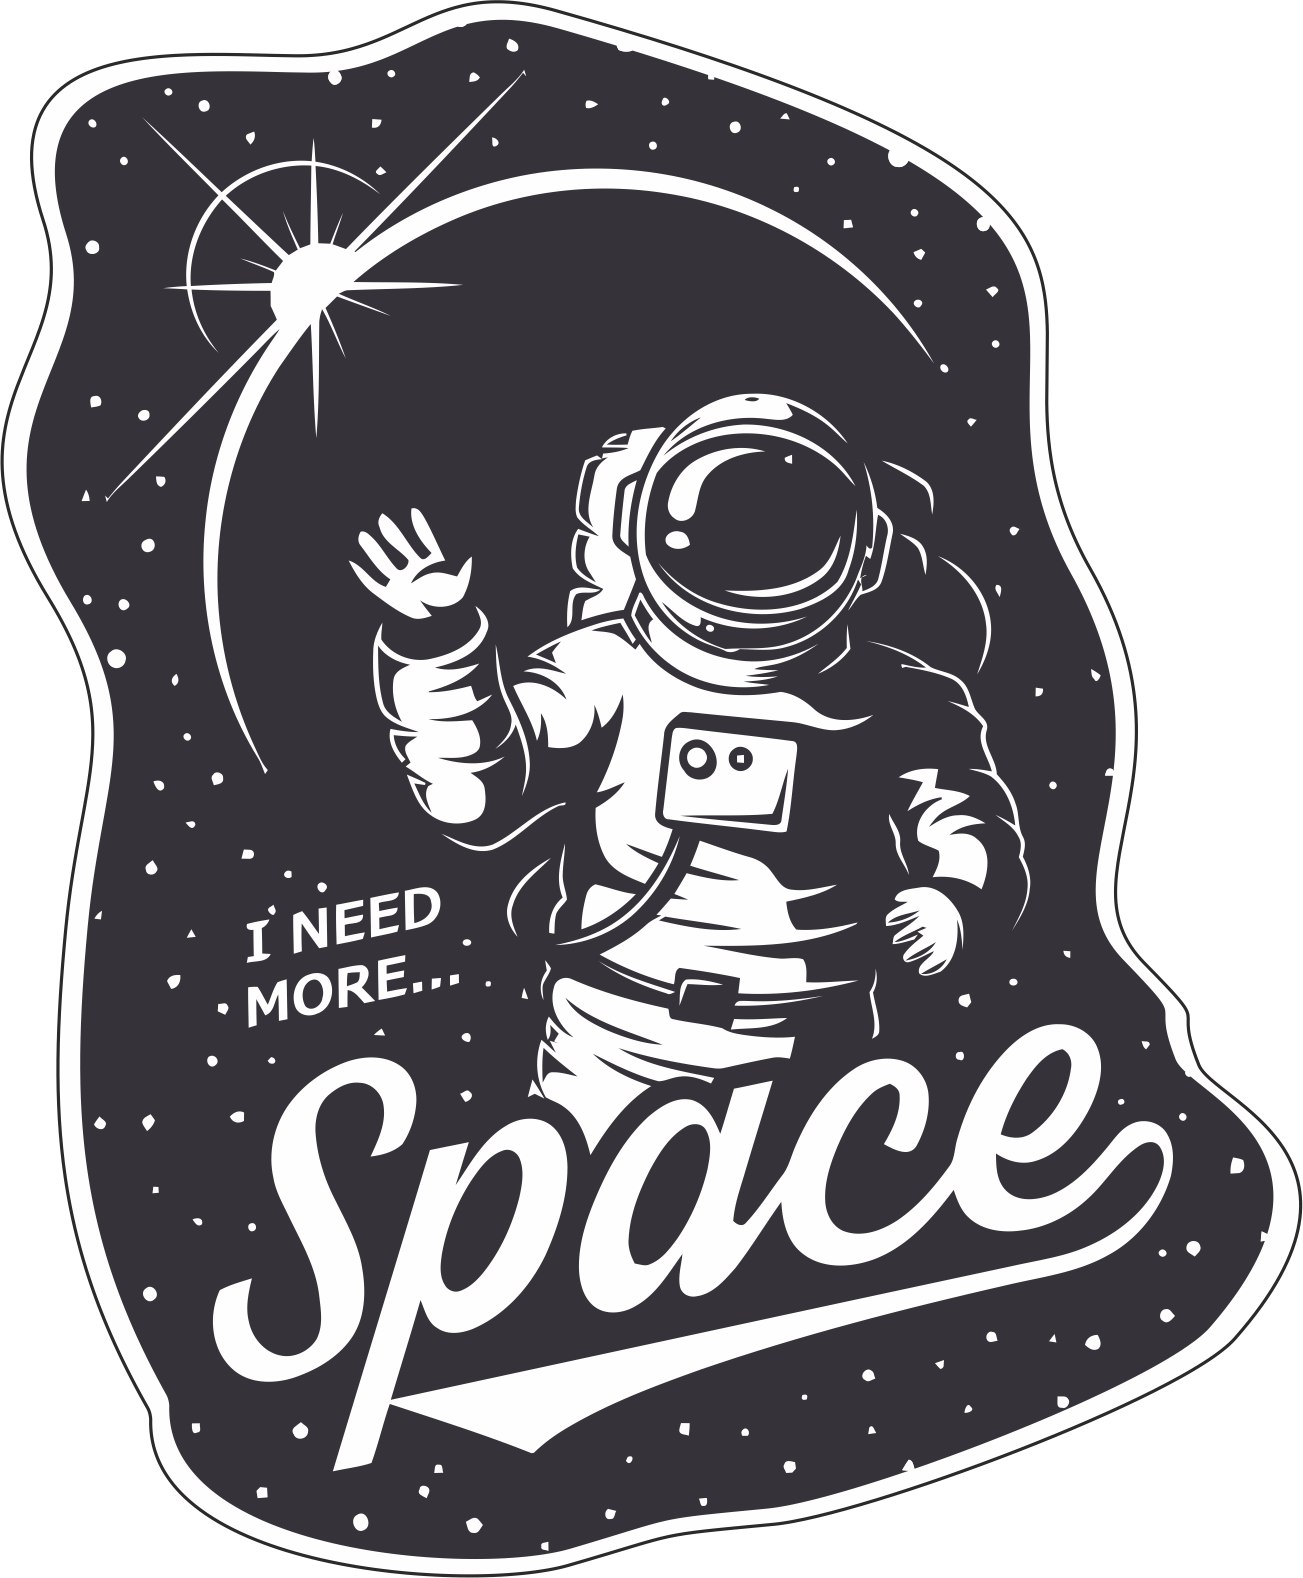 I Need More Space Sticker Vector Art Free Vector